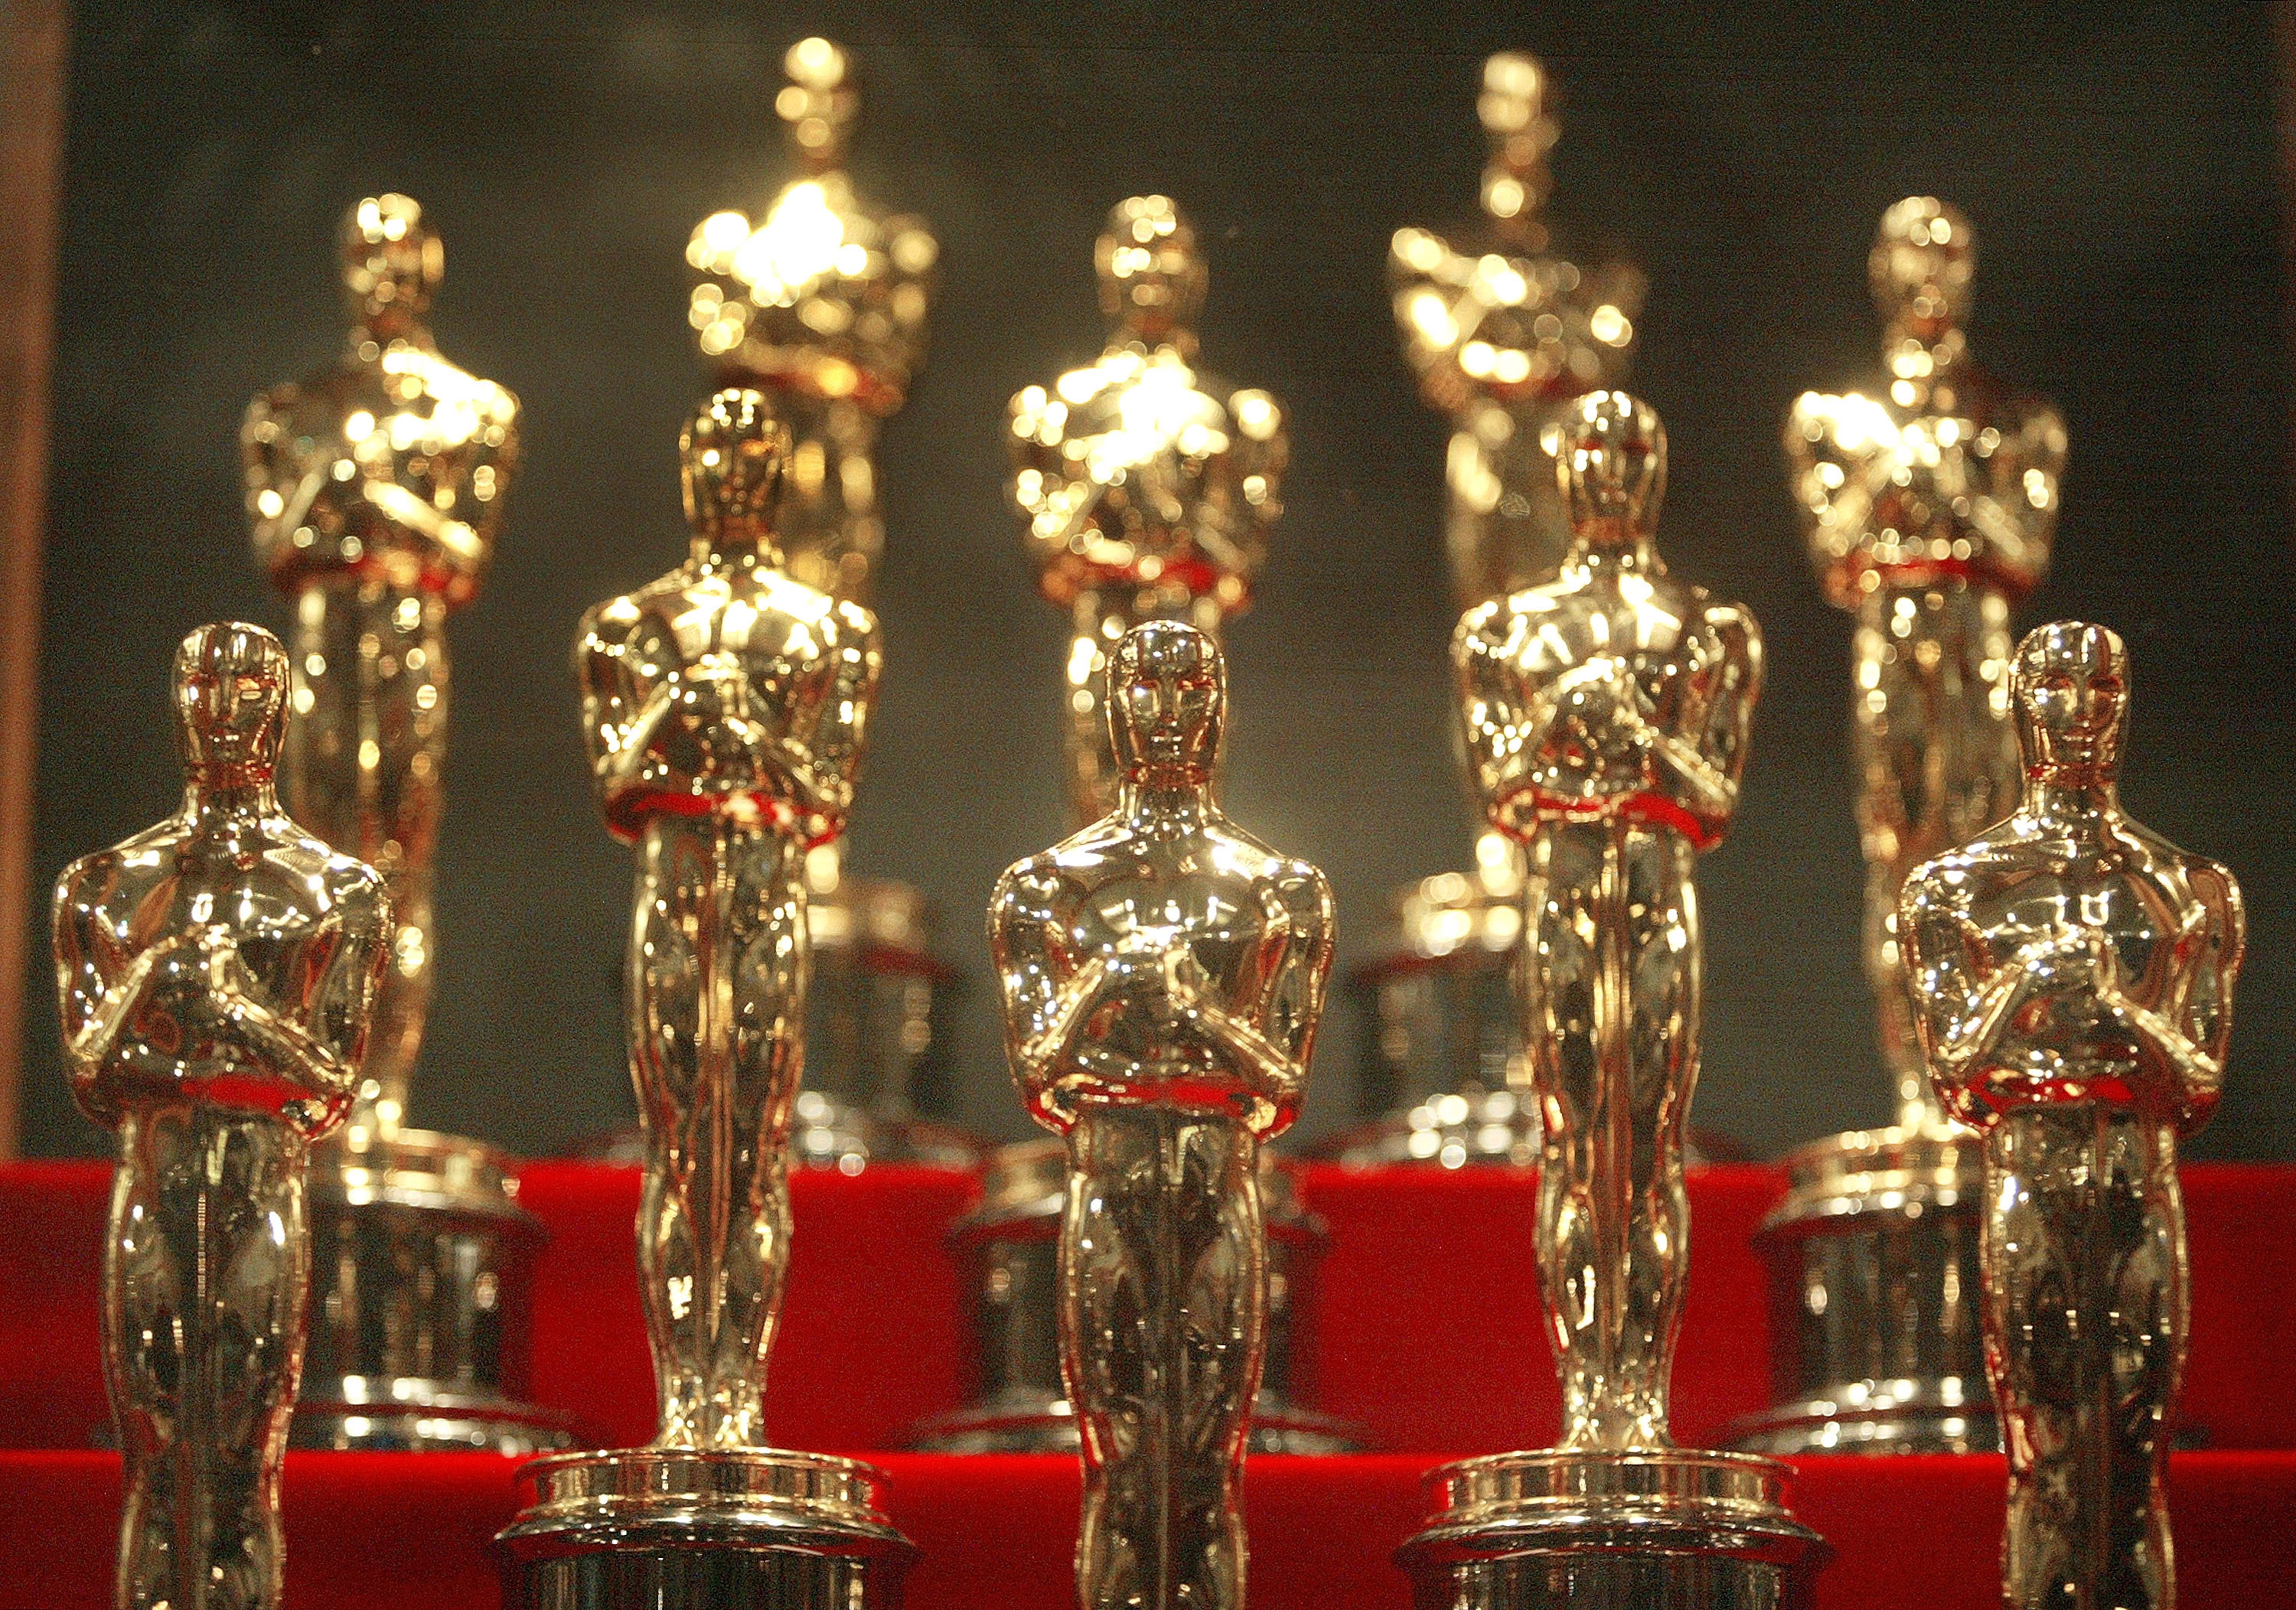 Oscar statuettes are displayed the Museum of Science and Industry in Chicago, Illinois.